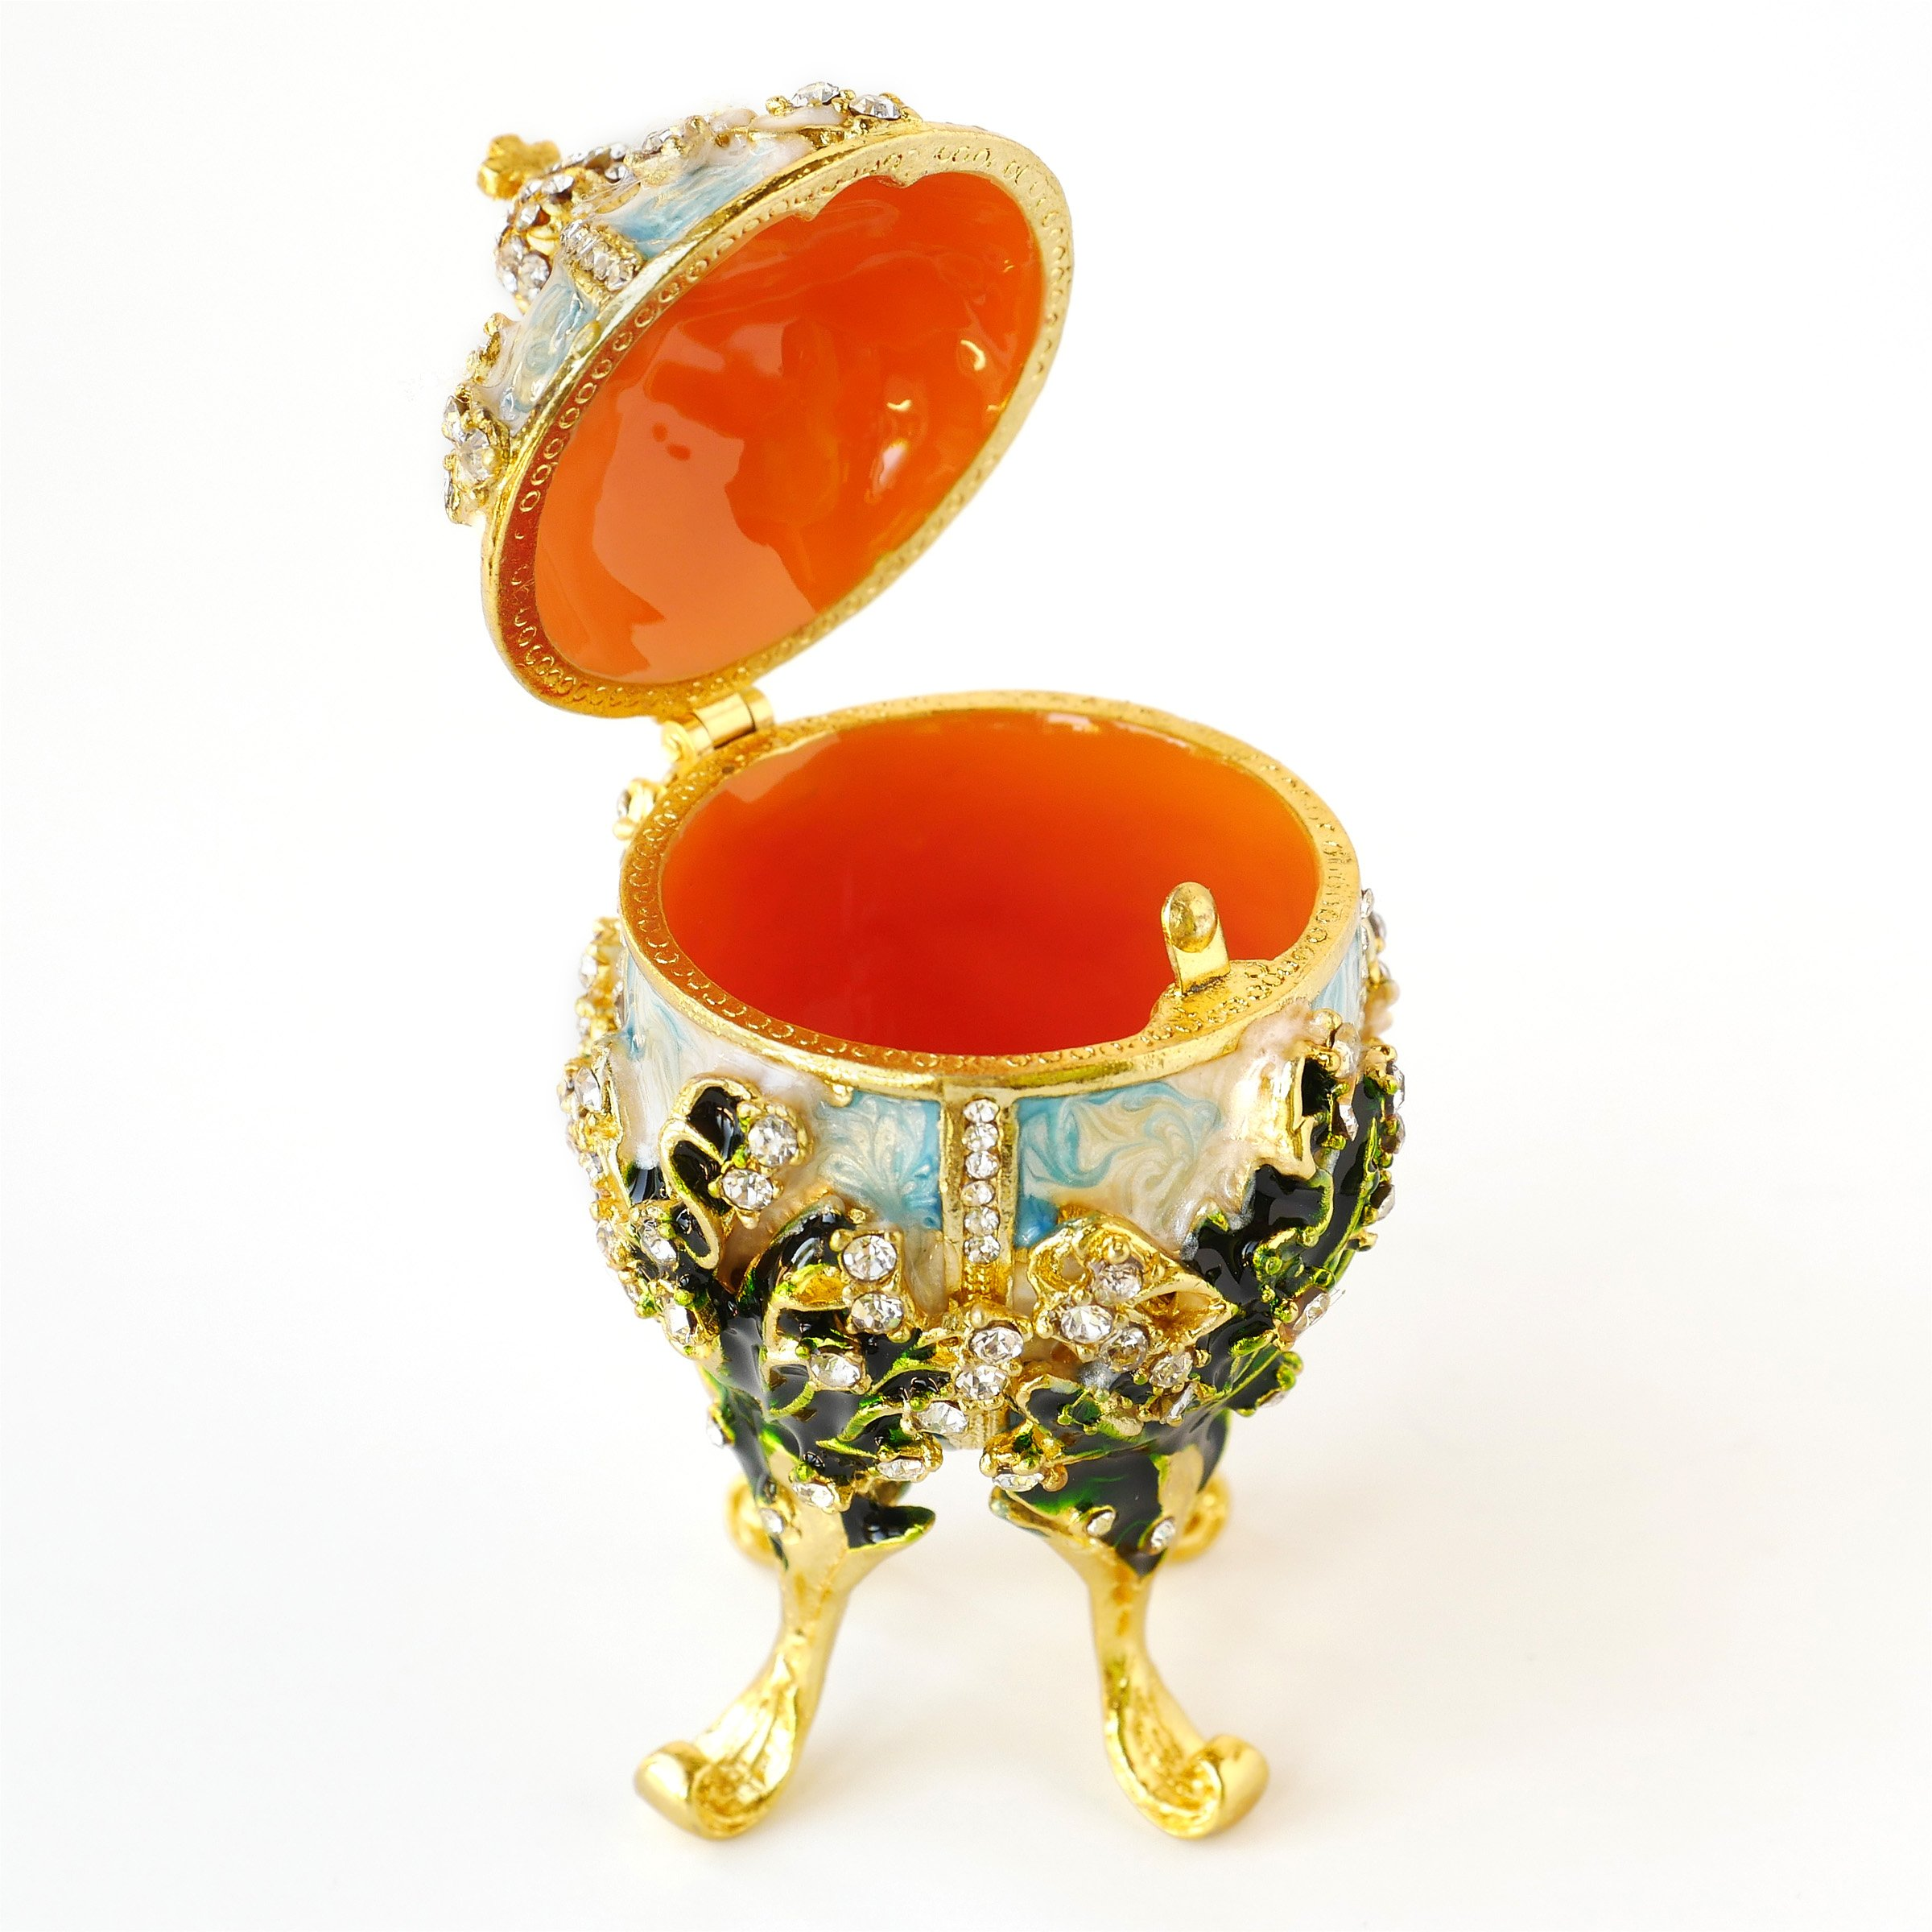 Apropos Hand-Painted Vintage Style Faberge Egg with Rich Enamel and Sparkling Rhinestones Jewelry Trinket Box (S. White Cross) by Apropos (Image #2)